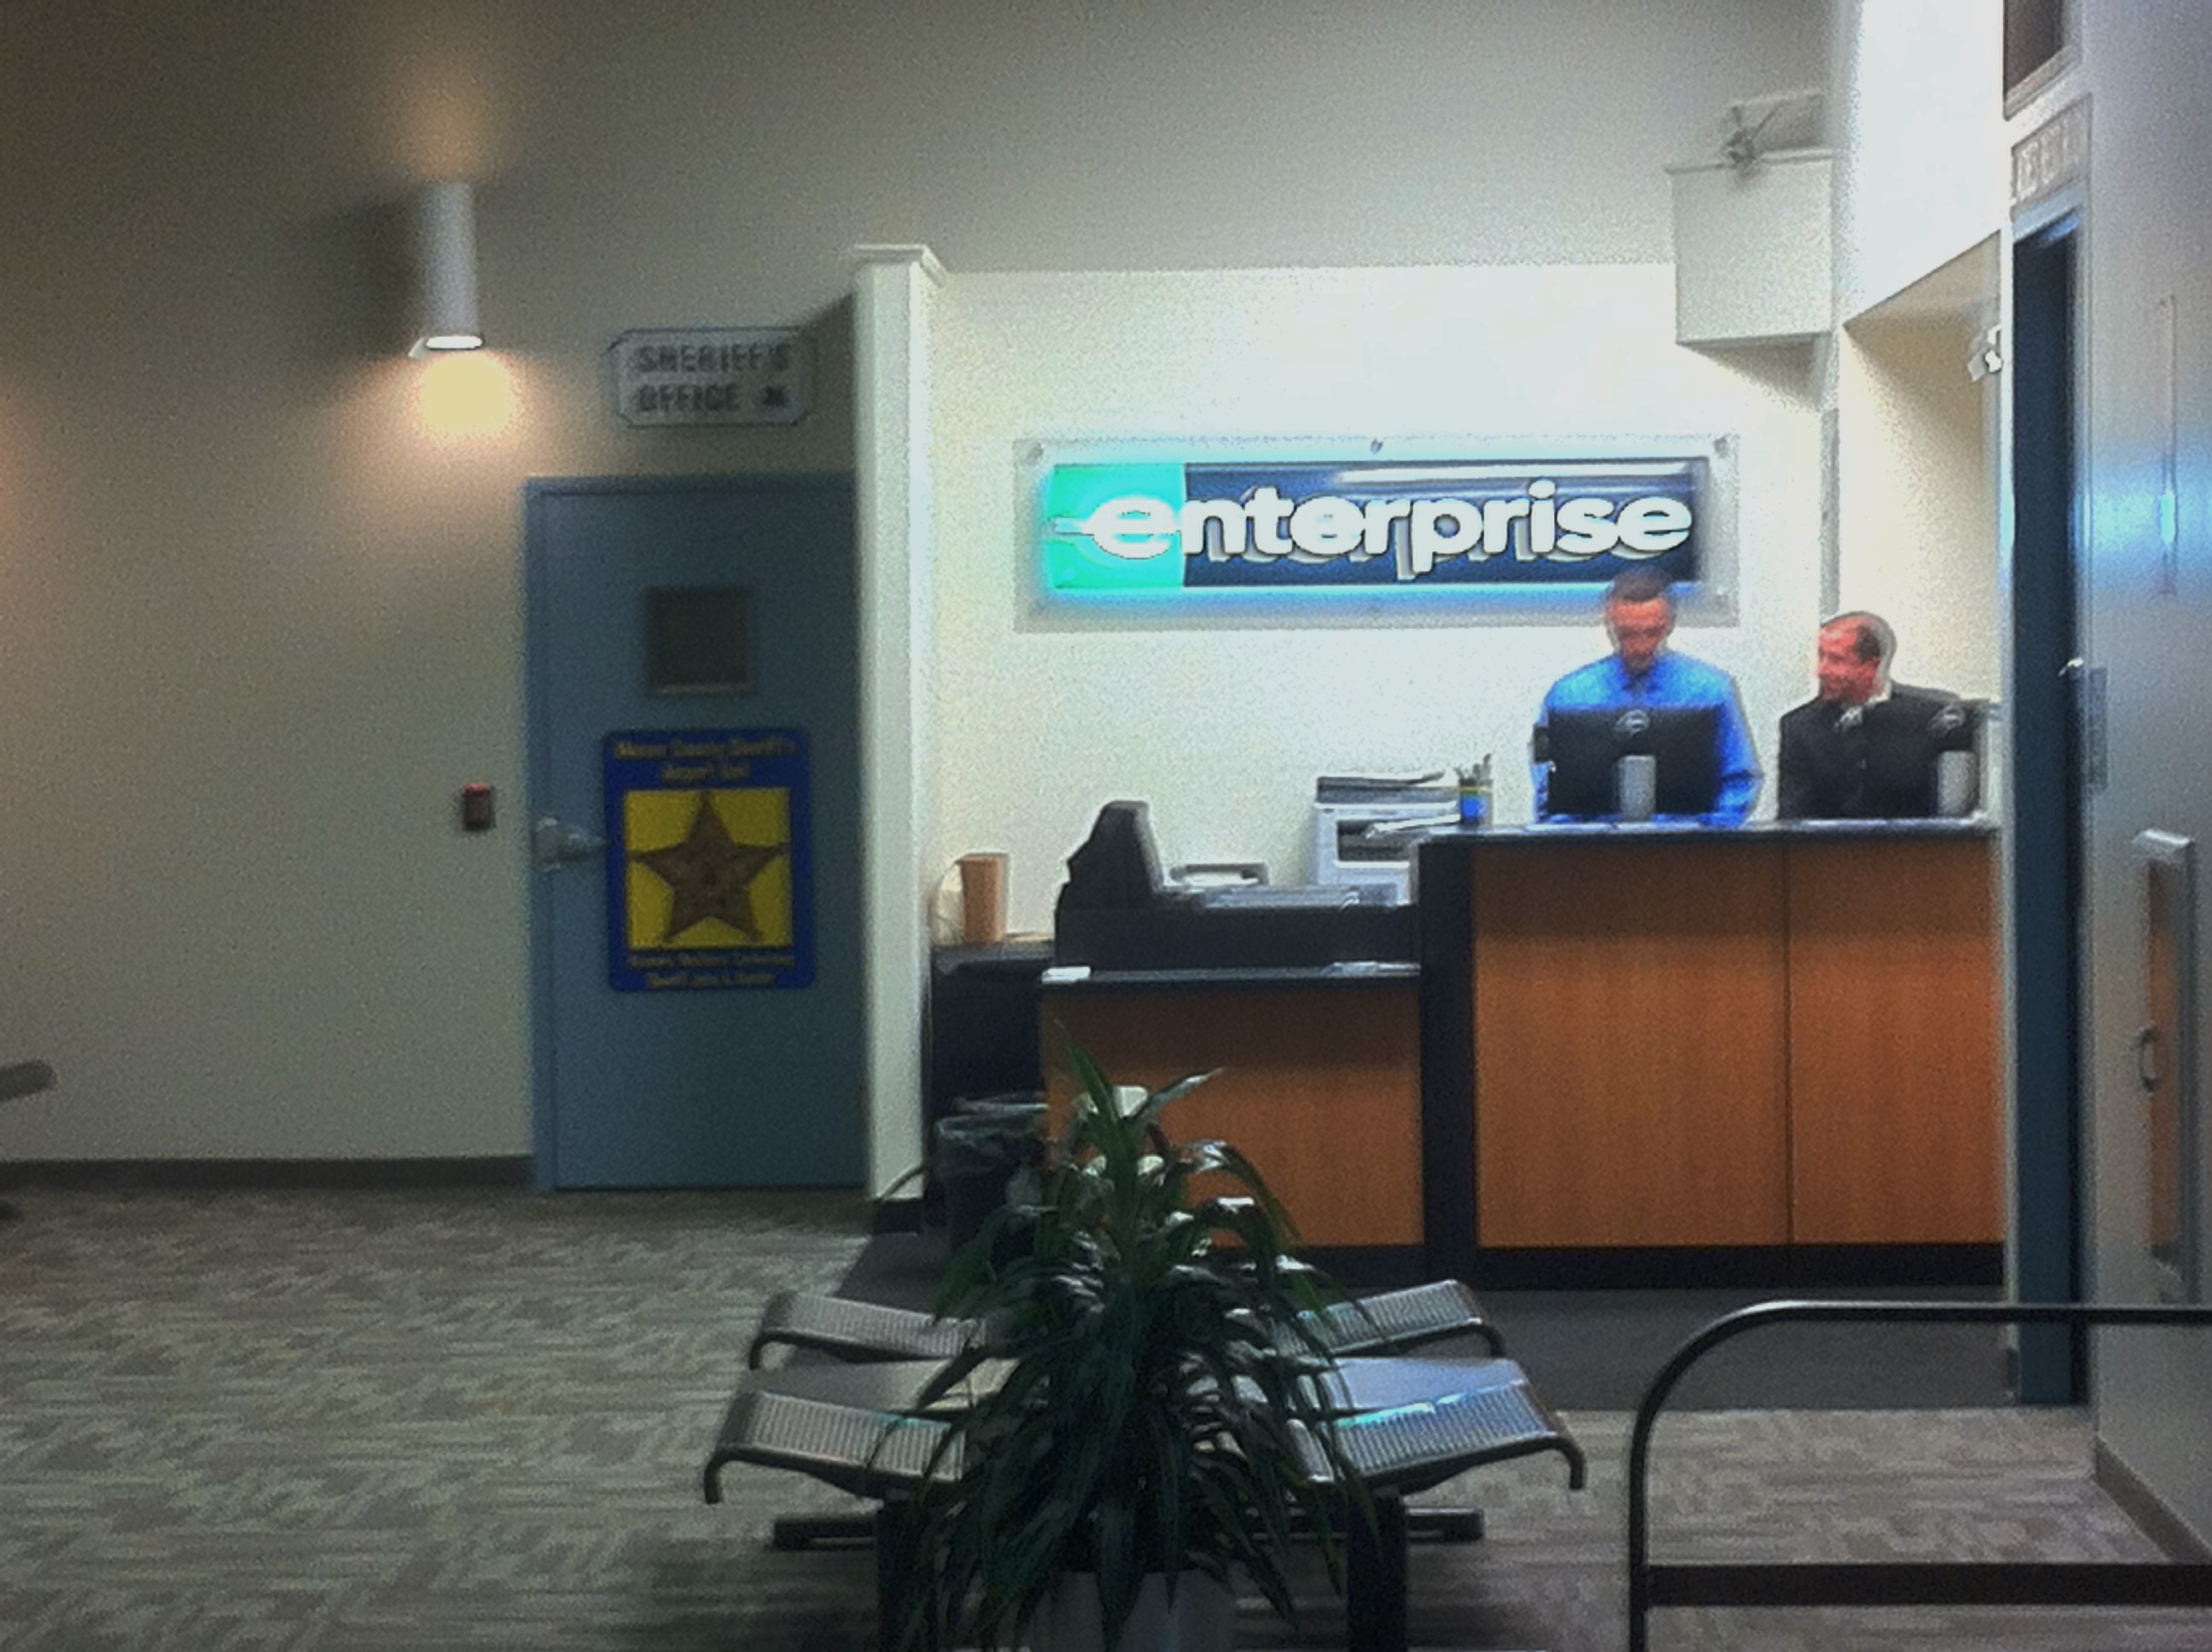 Enterprise Car Rental Locations Milford Ct